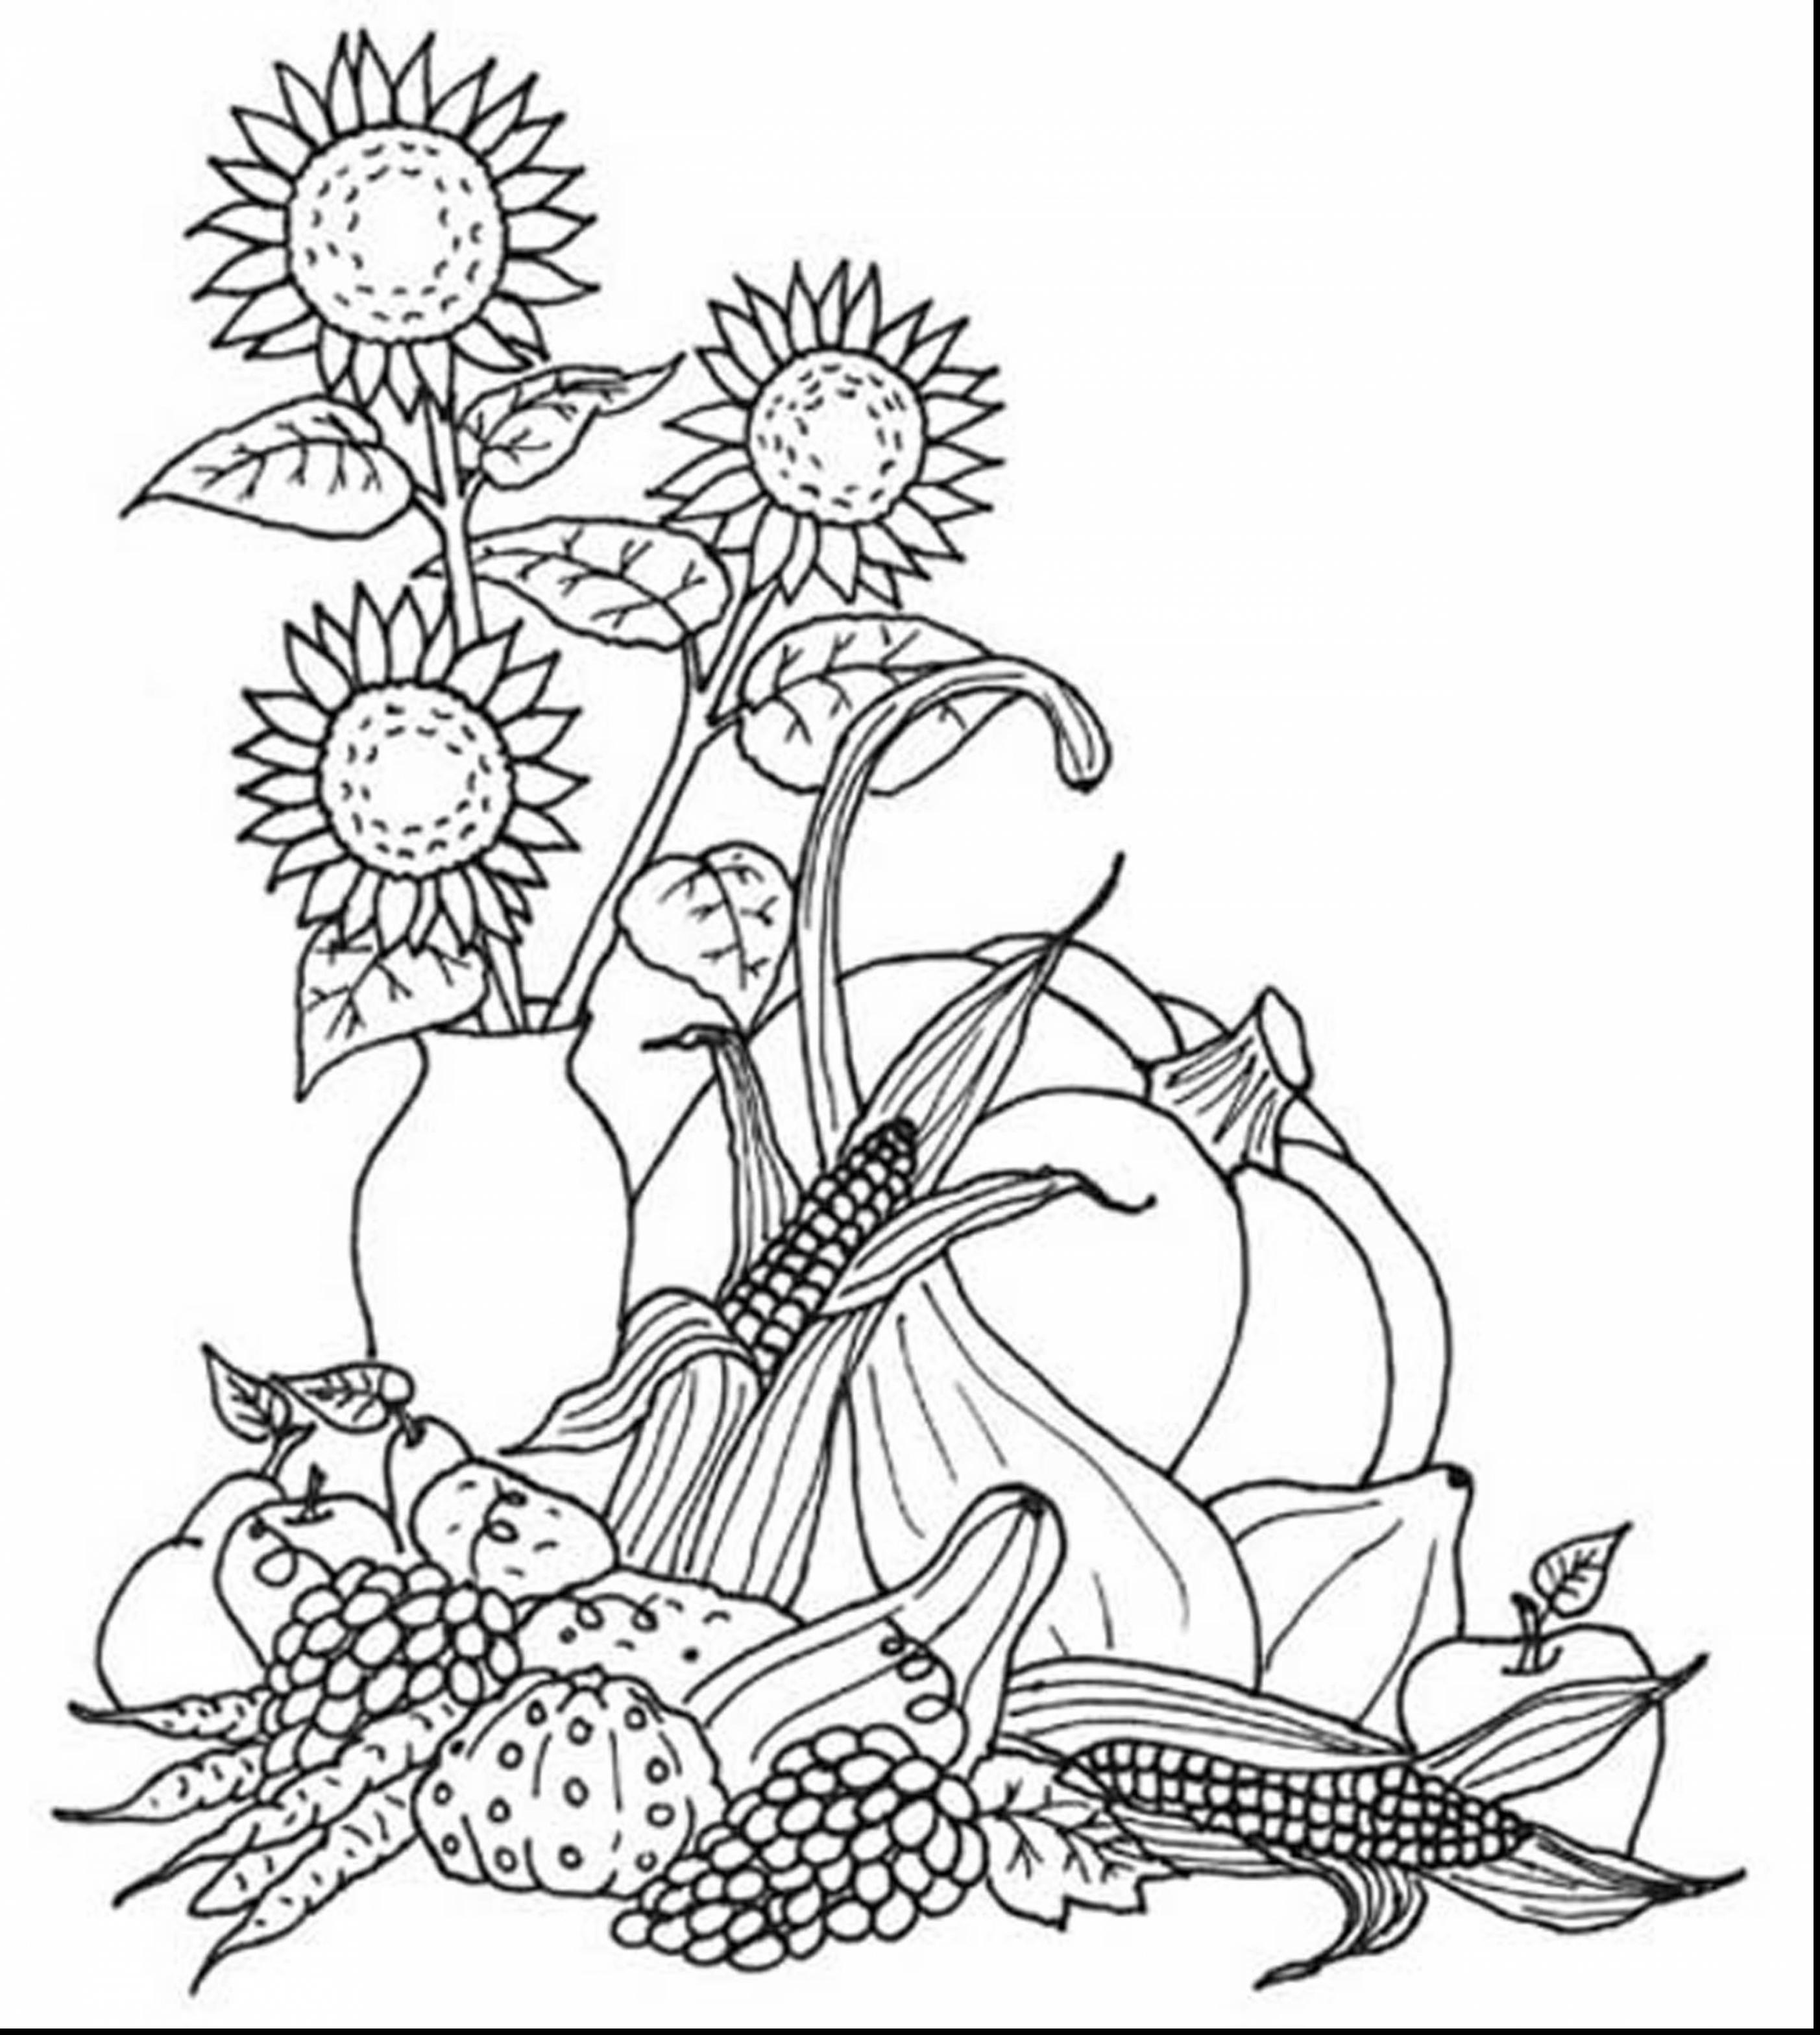 Fall Leaves Coloring Pages At Getdrawings Com Free For Personal